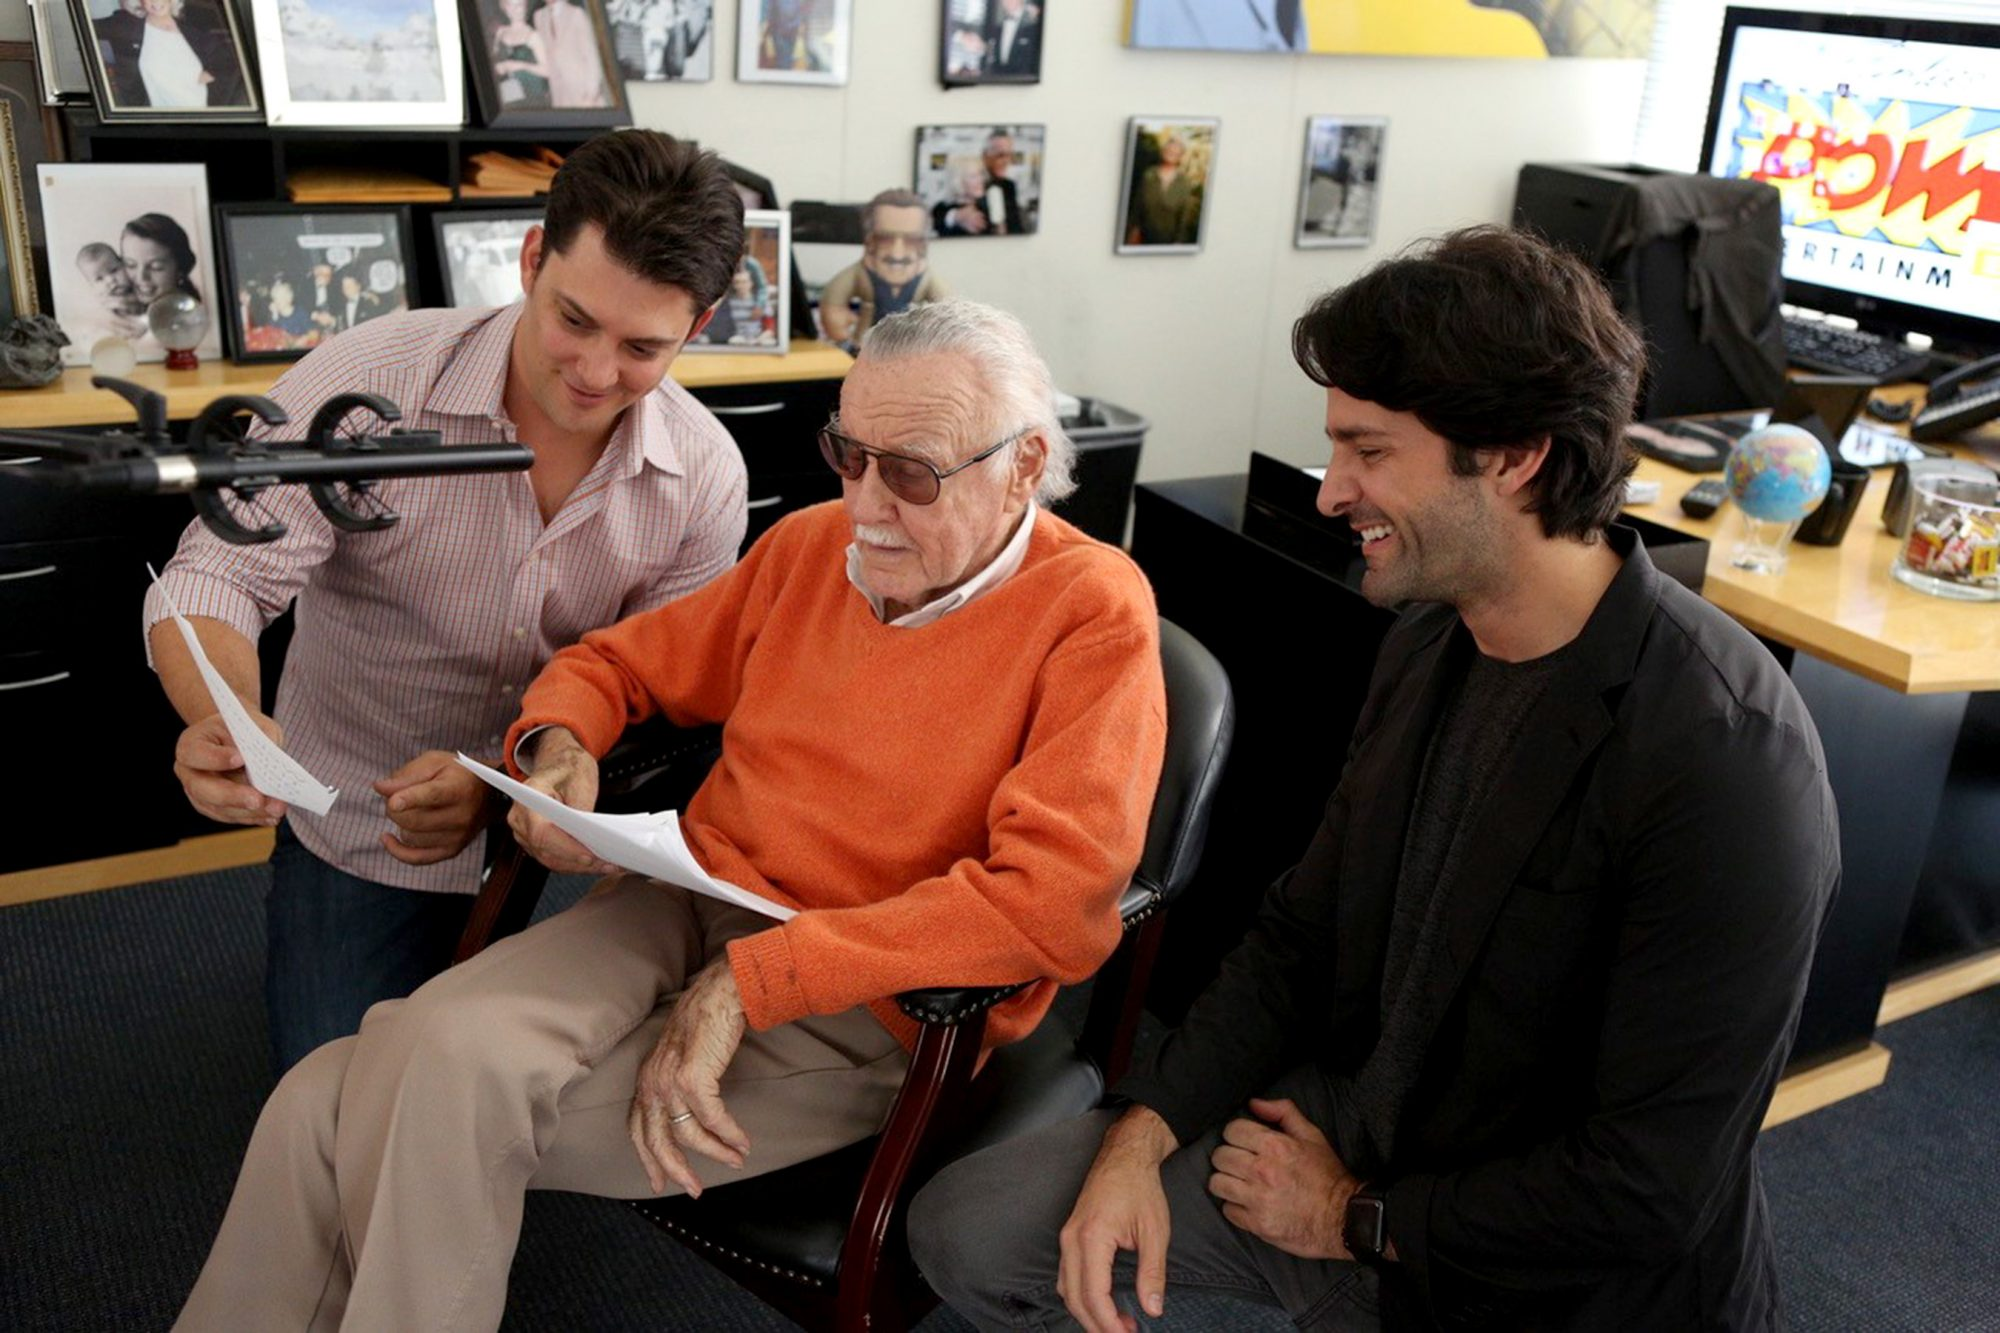 Luke Lieberman, Stan Lee, and Ryan Silbert